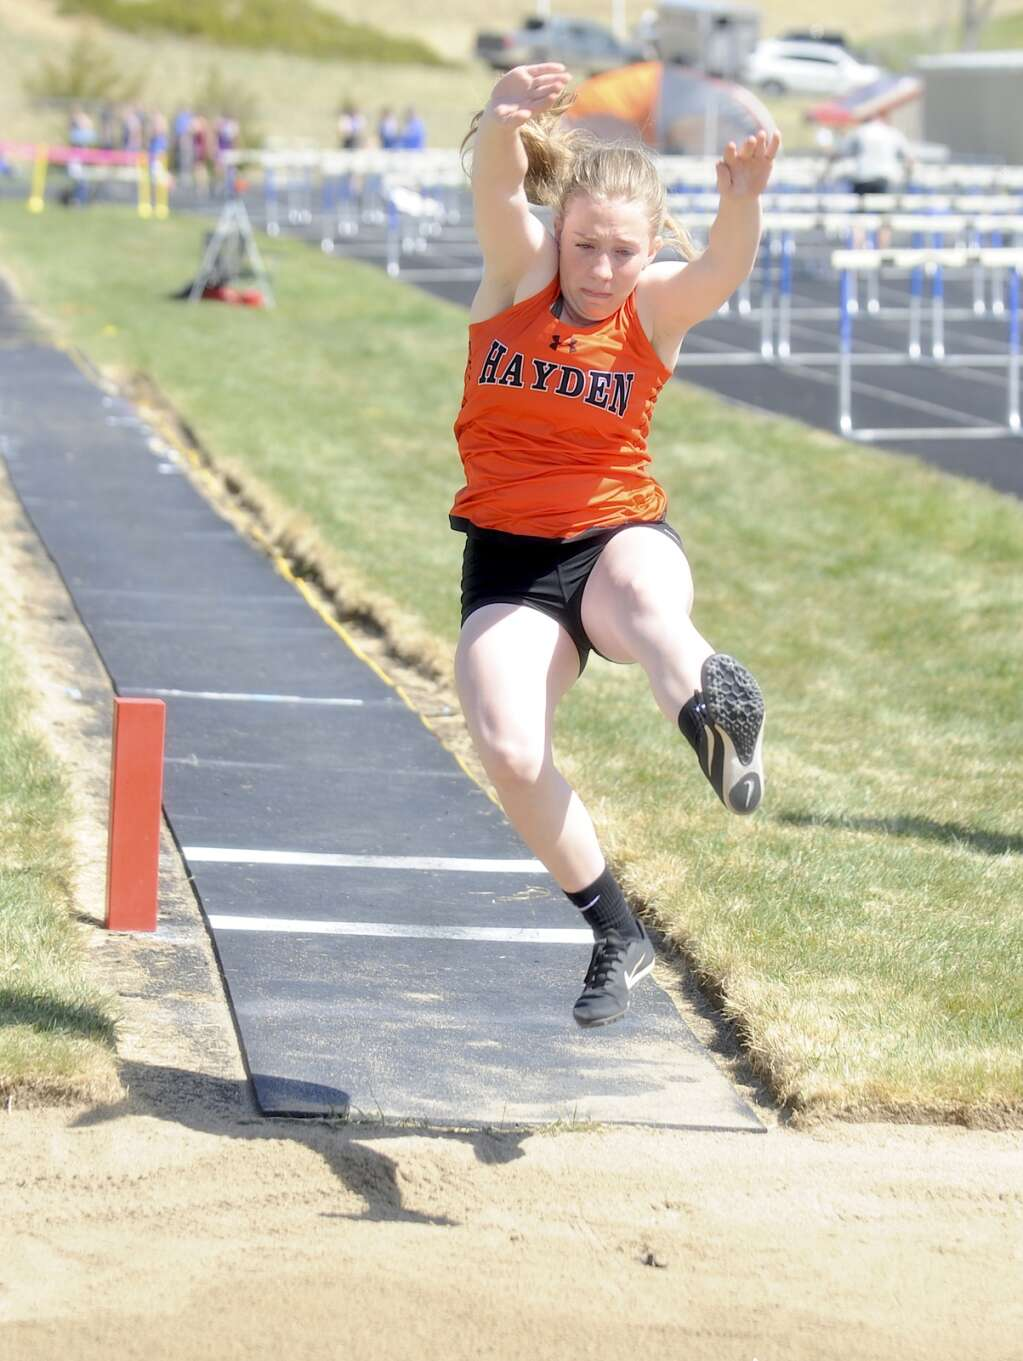 A Hayden athlete competes in long jump at the Clint Wells Invitational in Craig on Friday. (Photo by Shelby Reardon)